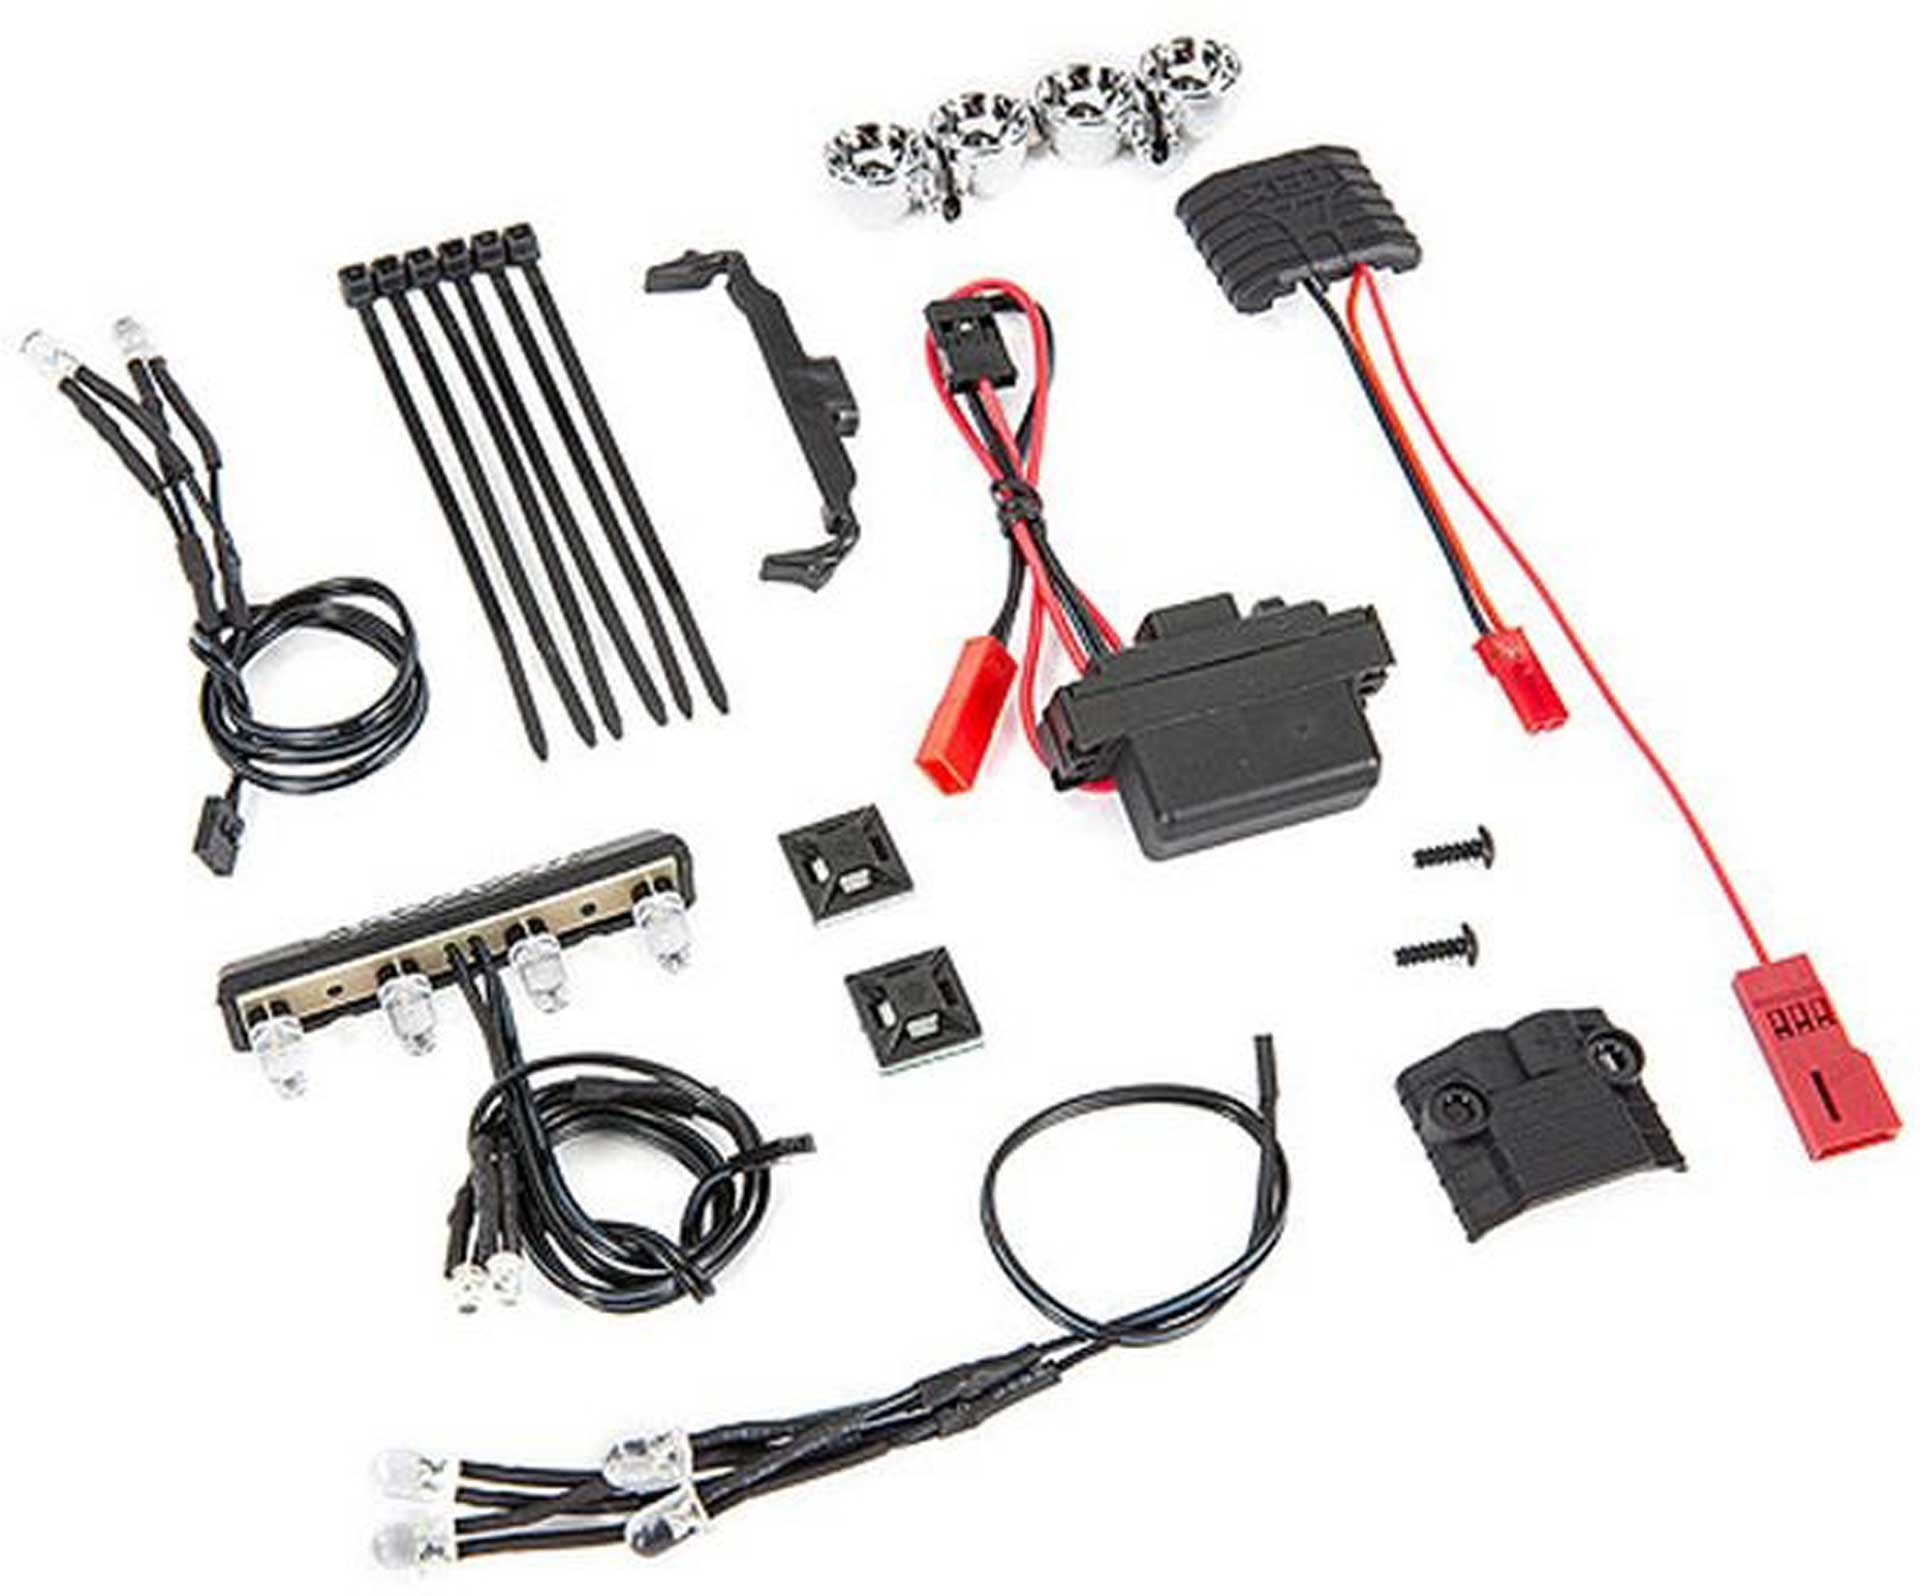 TRAXXAS LED LIGHT KIT COMPLETE 1/16 SUMMIT